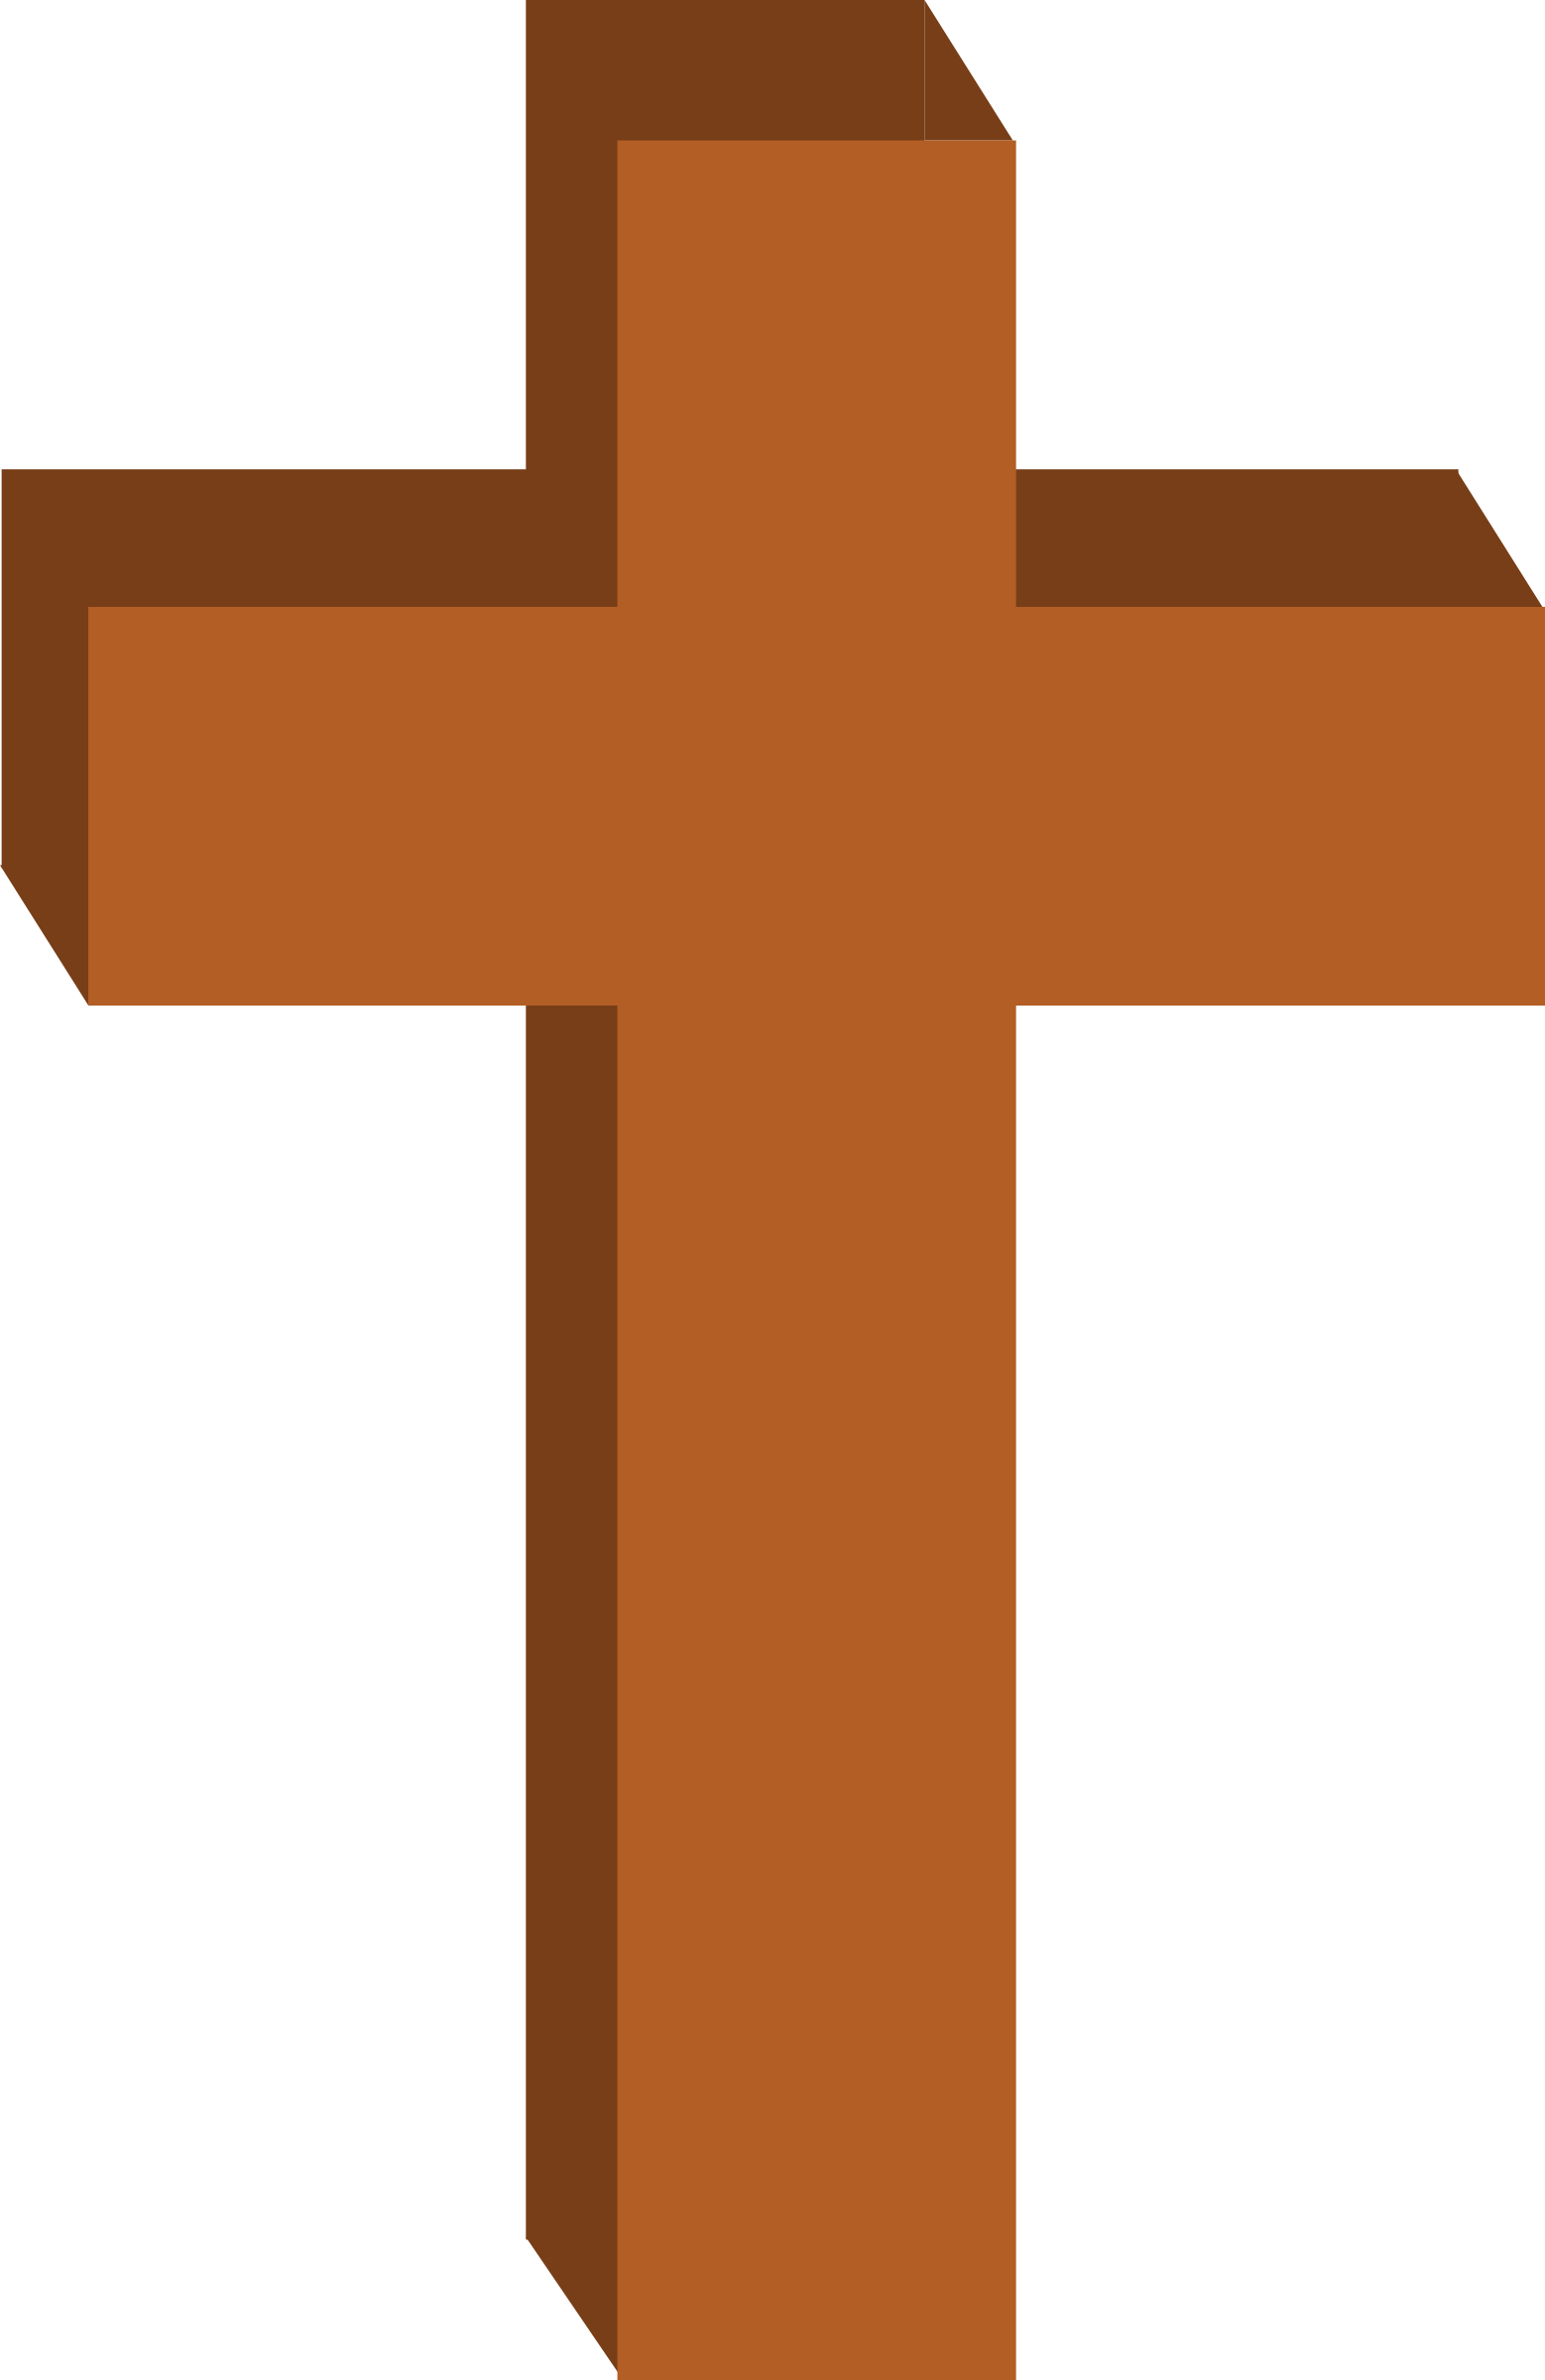 Christian icons png free. Crucifix clipart turquoise cross